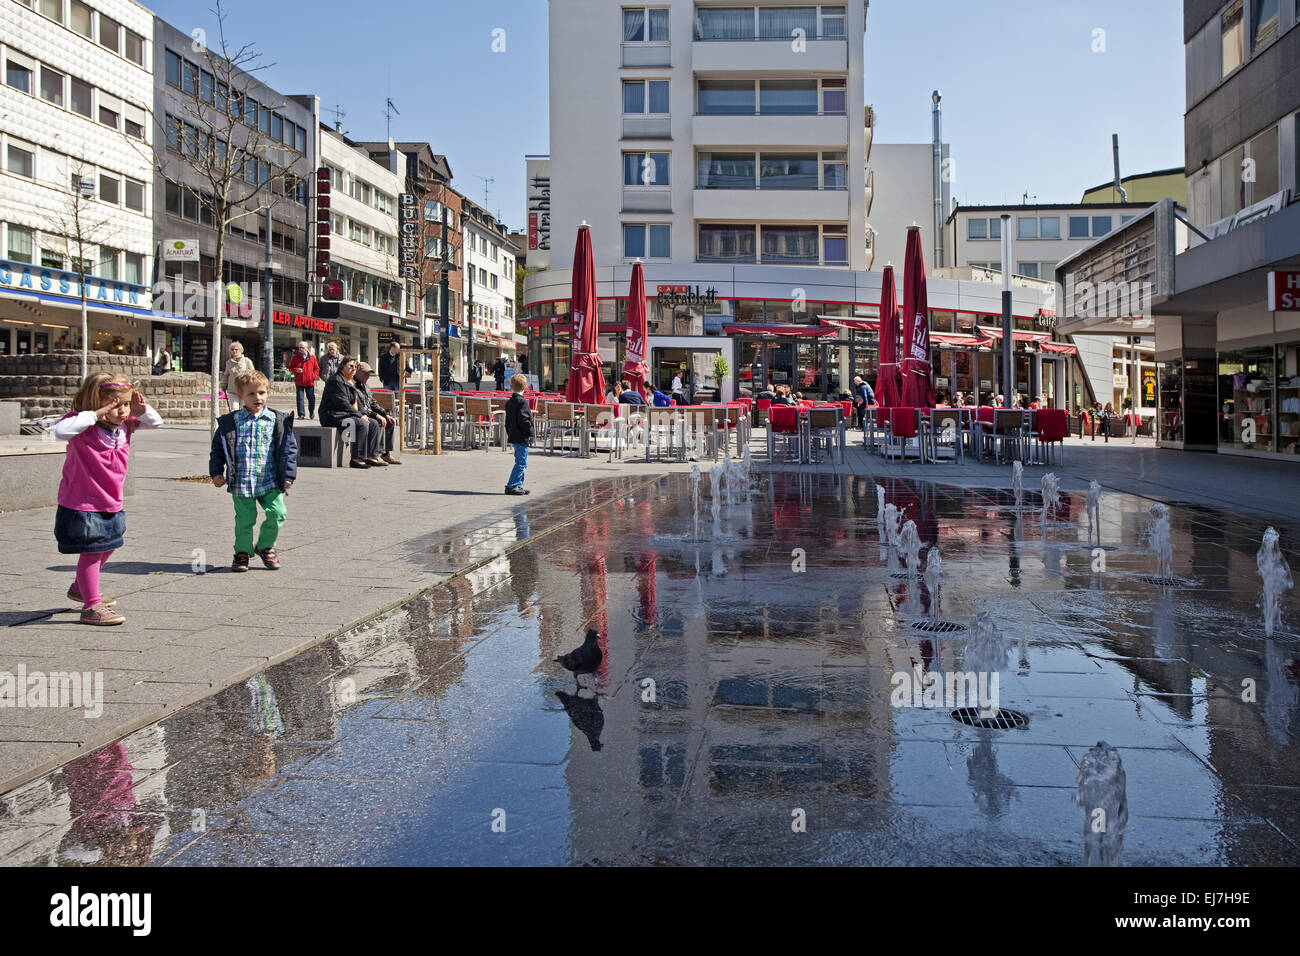 Citizen of Berlin place, Witten, Germany - Stock Image